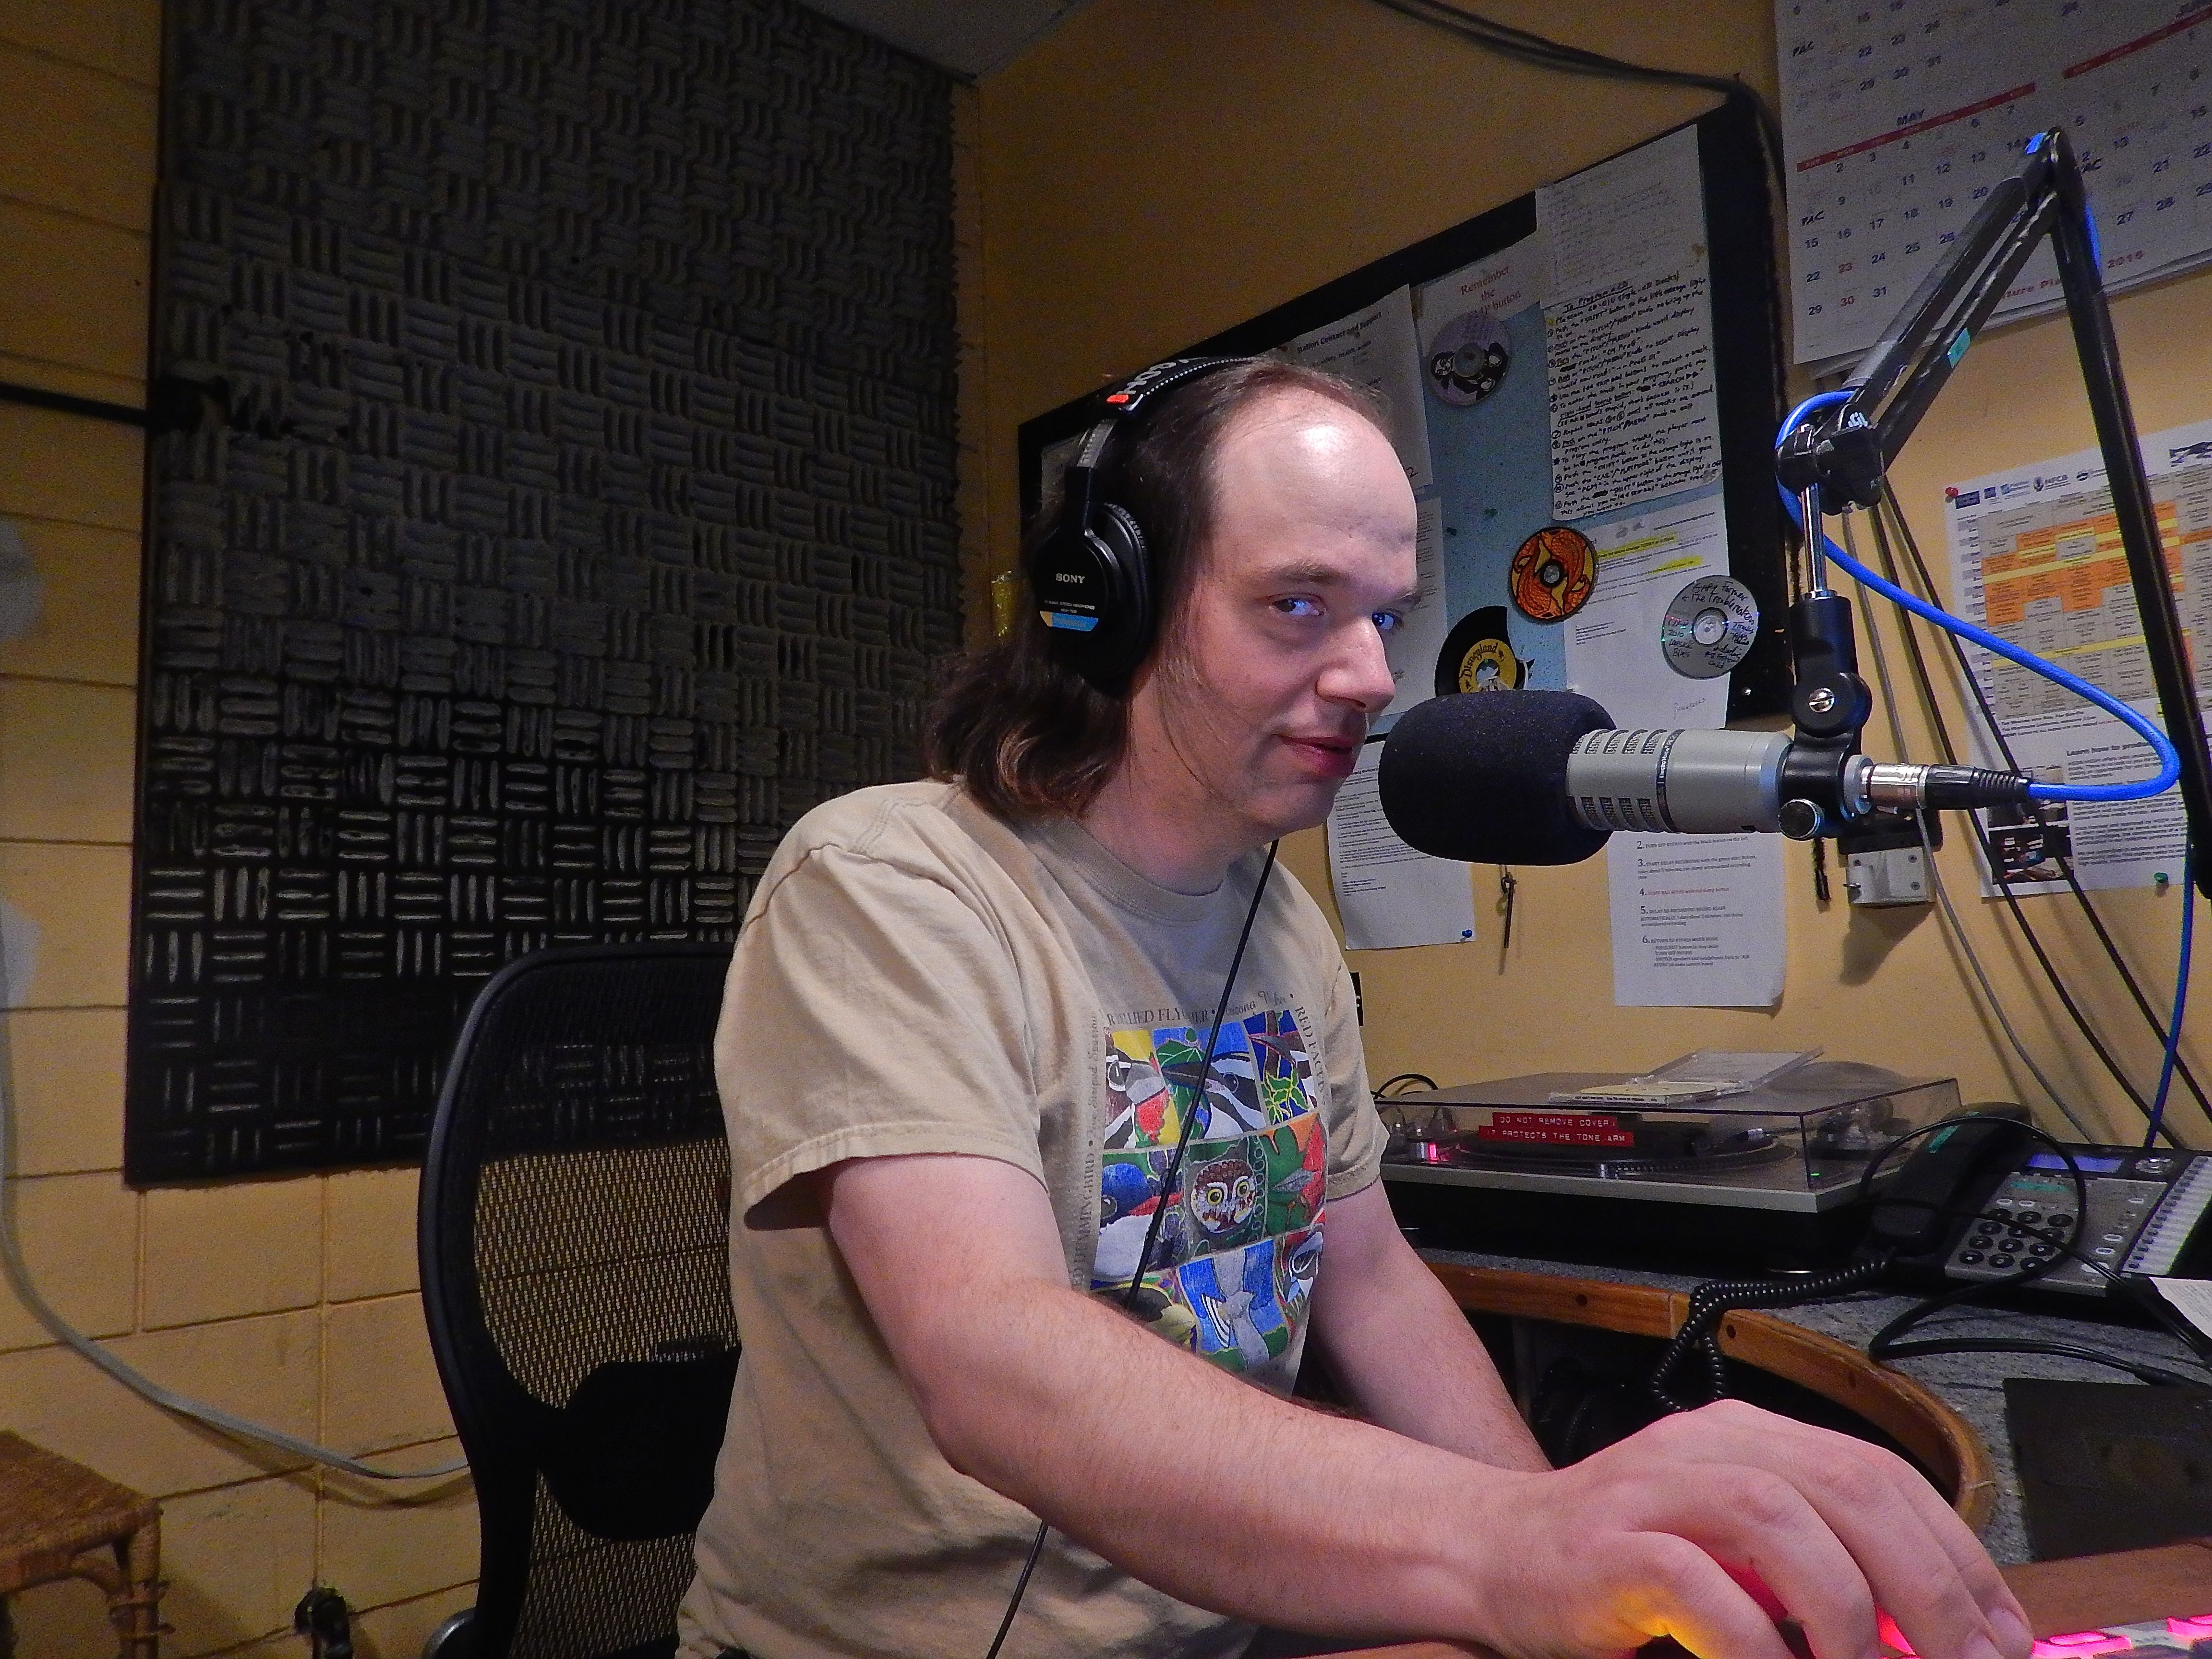 Caption: On the air at WGDR-Plainfield/WGDH-Hardwick, doing The Origin Series, Credit: Brian Aust